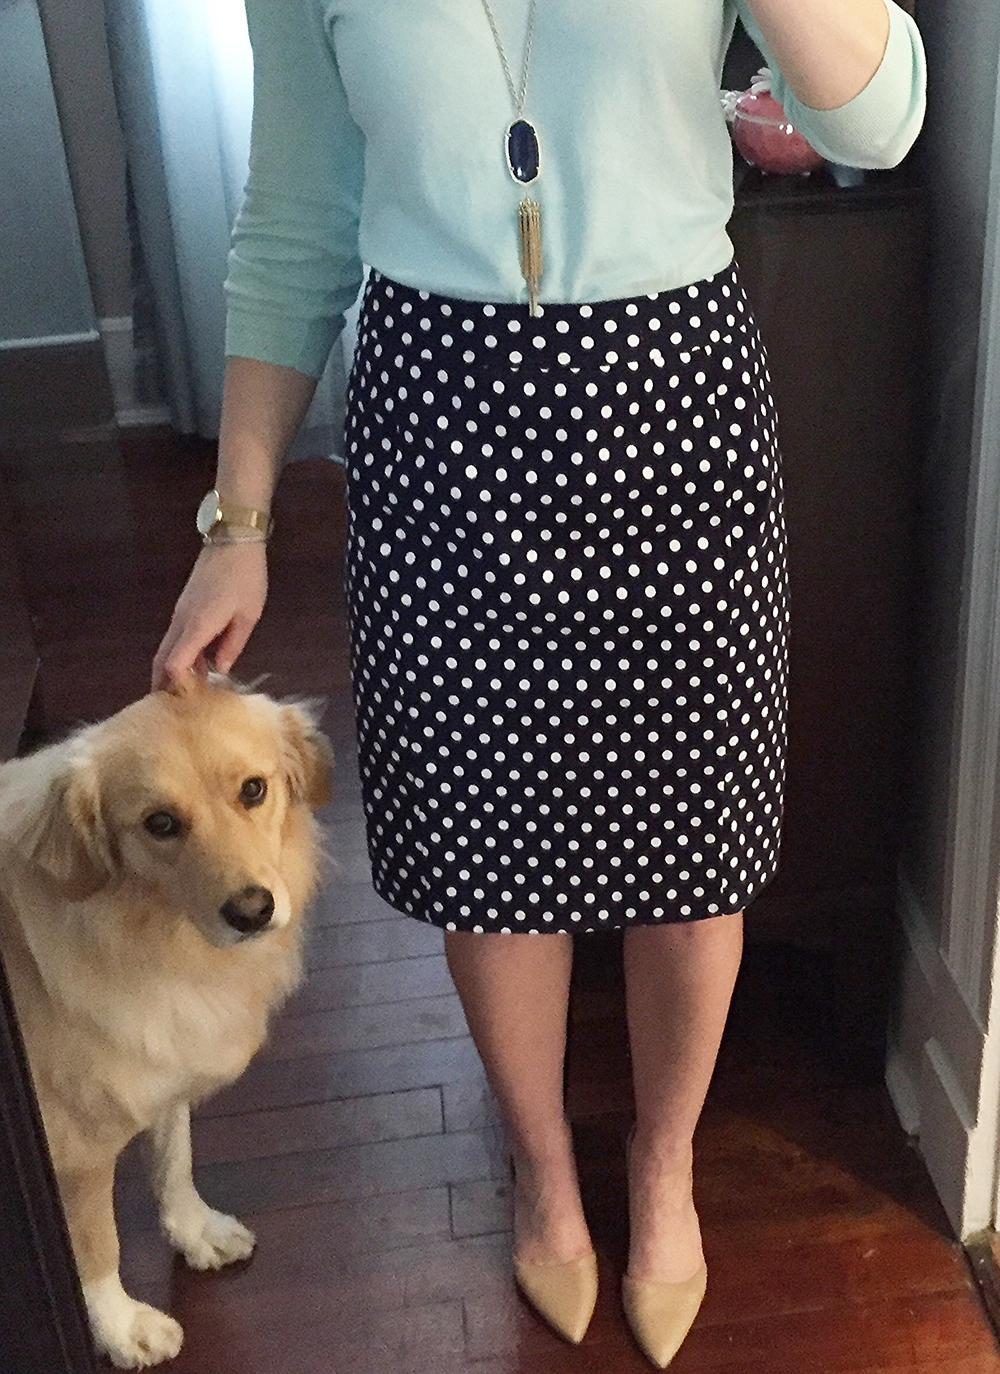 I'm sporting my new pencil skirt in this post-workday, slightly wrinkled outfit selfie.